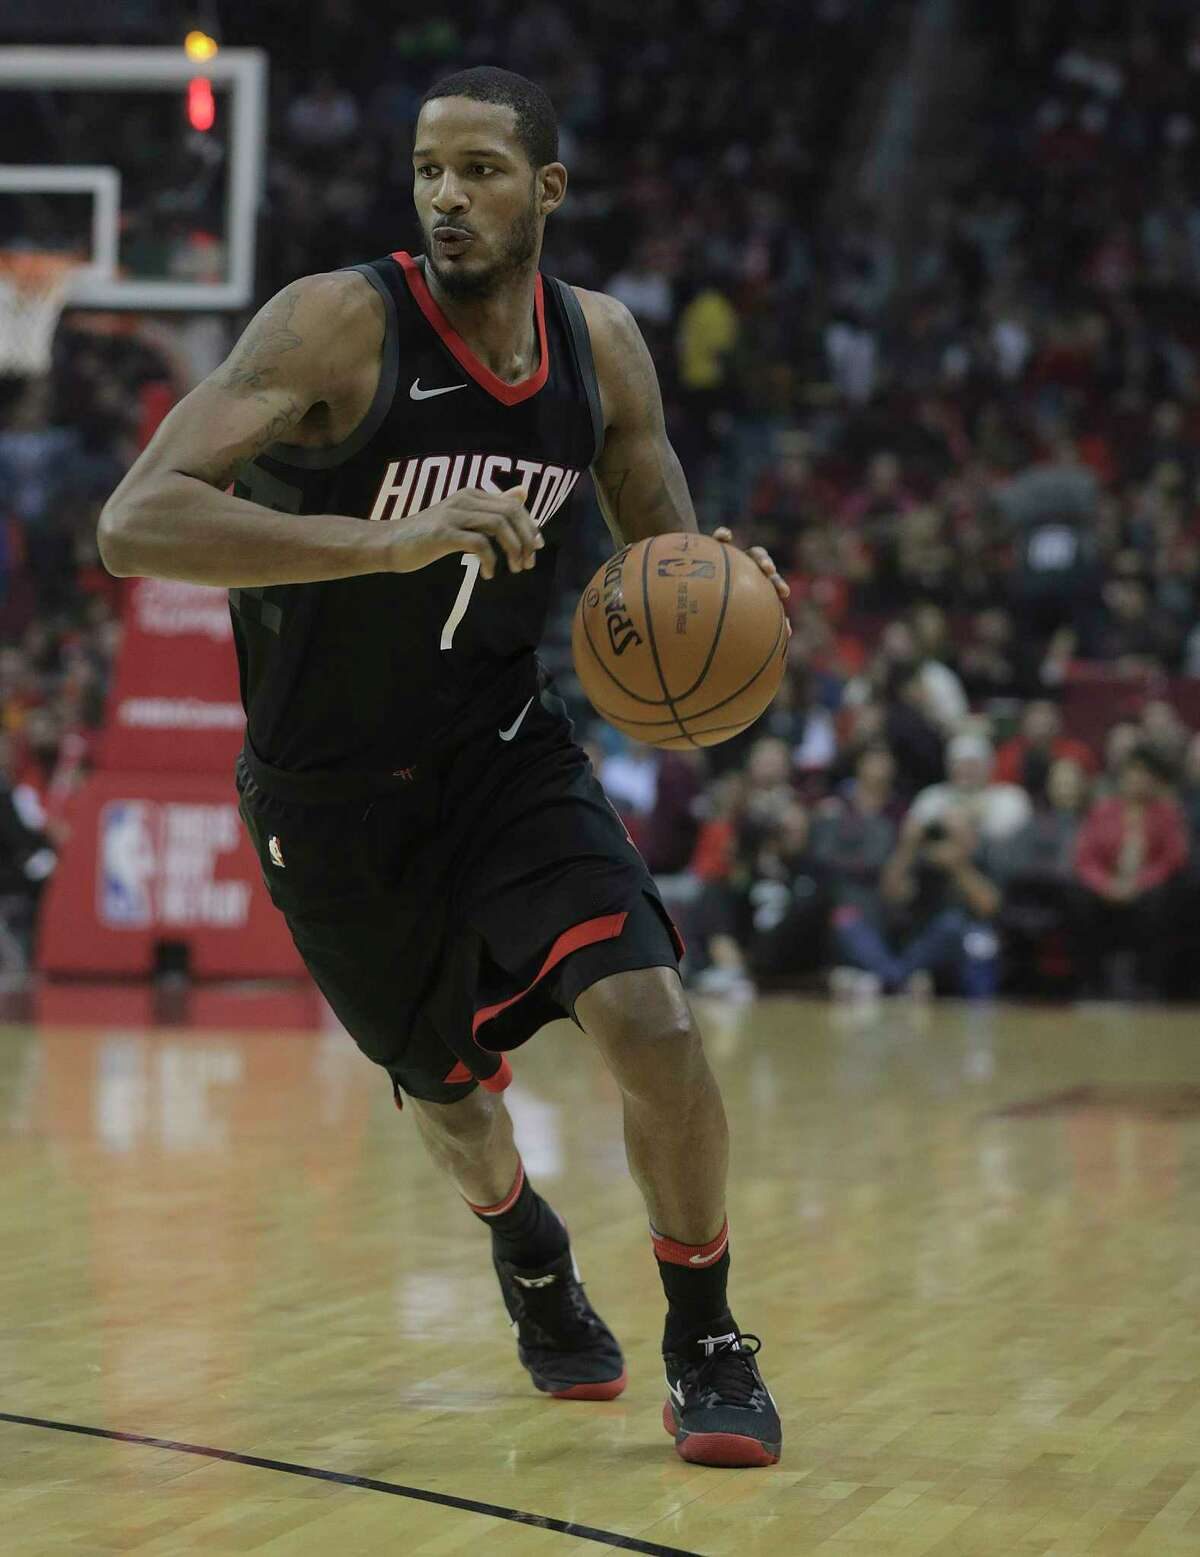 Houston Rockets forward Trevor Ariza (1) drives to the basket in the first quarter against the Charlotte Hornets at the Toyota Center on Wednesday, Dec. 13, 2017, in Houston.